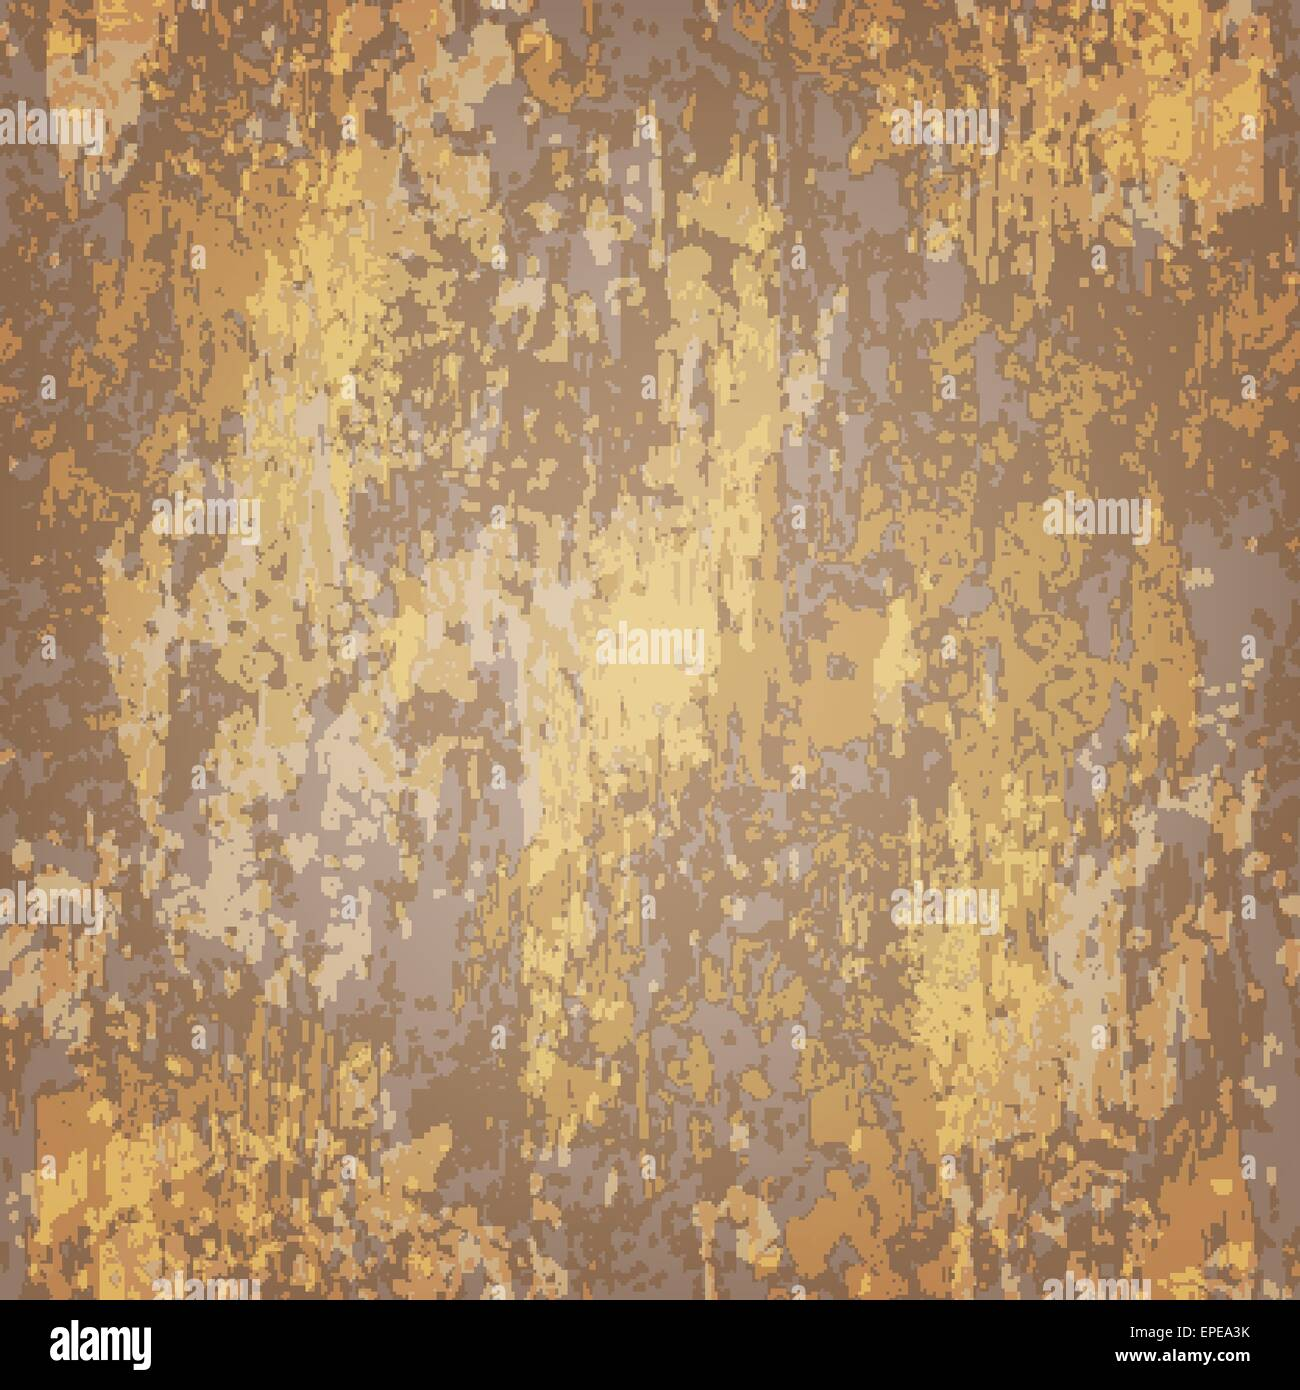 Abstract Seamless Texture Of Brown Rusted Metal